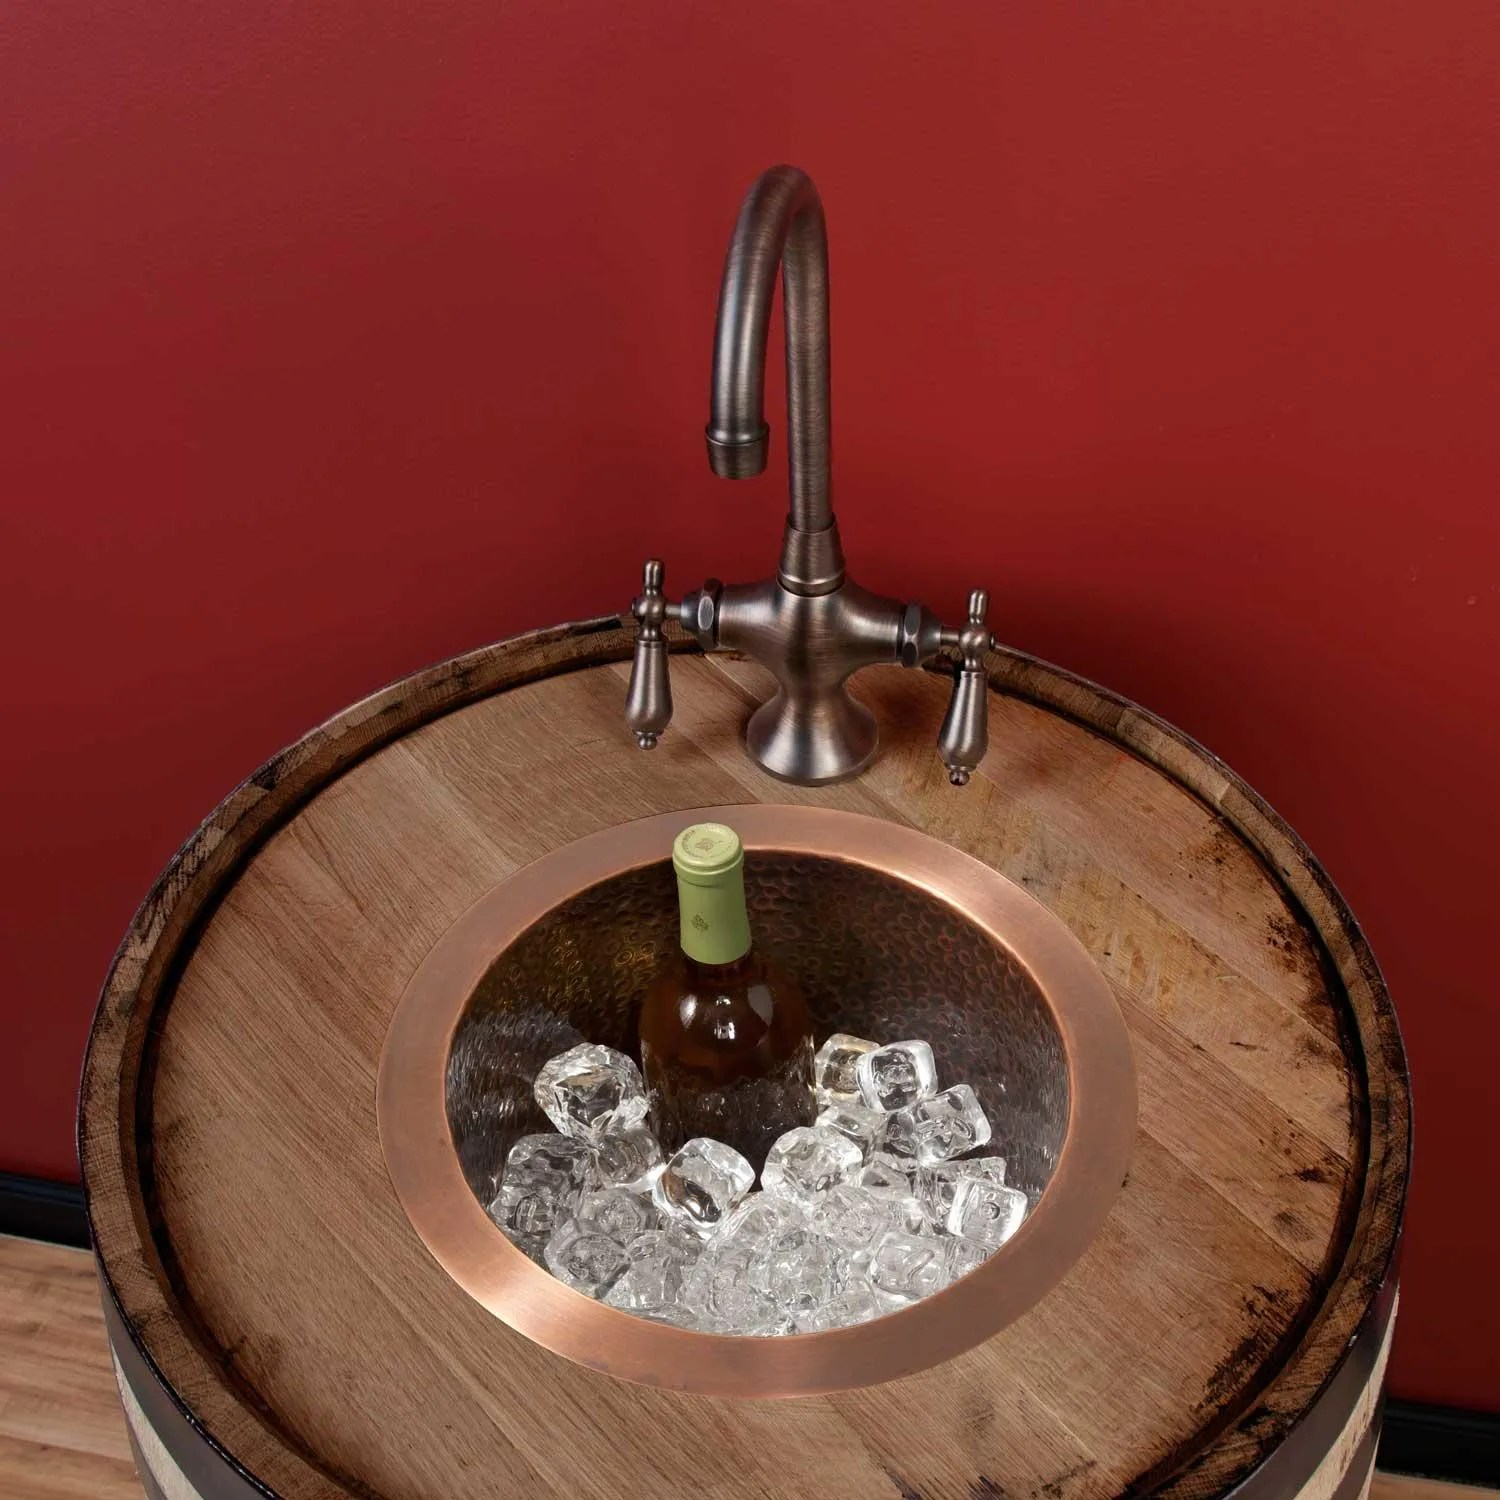 deep kitchen sink free outdoor plans signature hardware 12 creed extra hammered copper bar